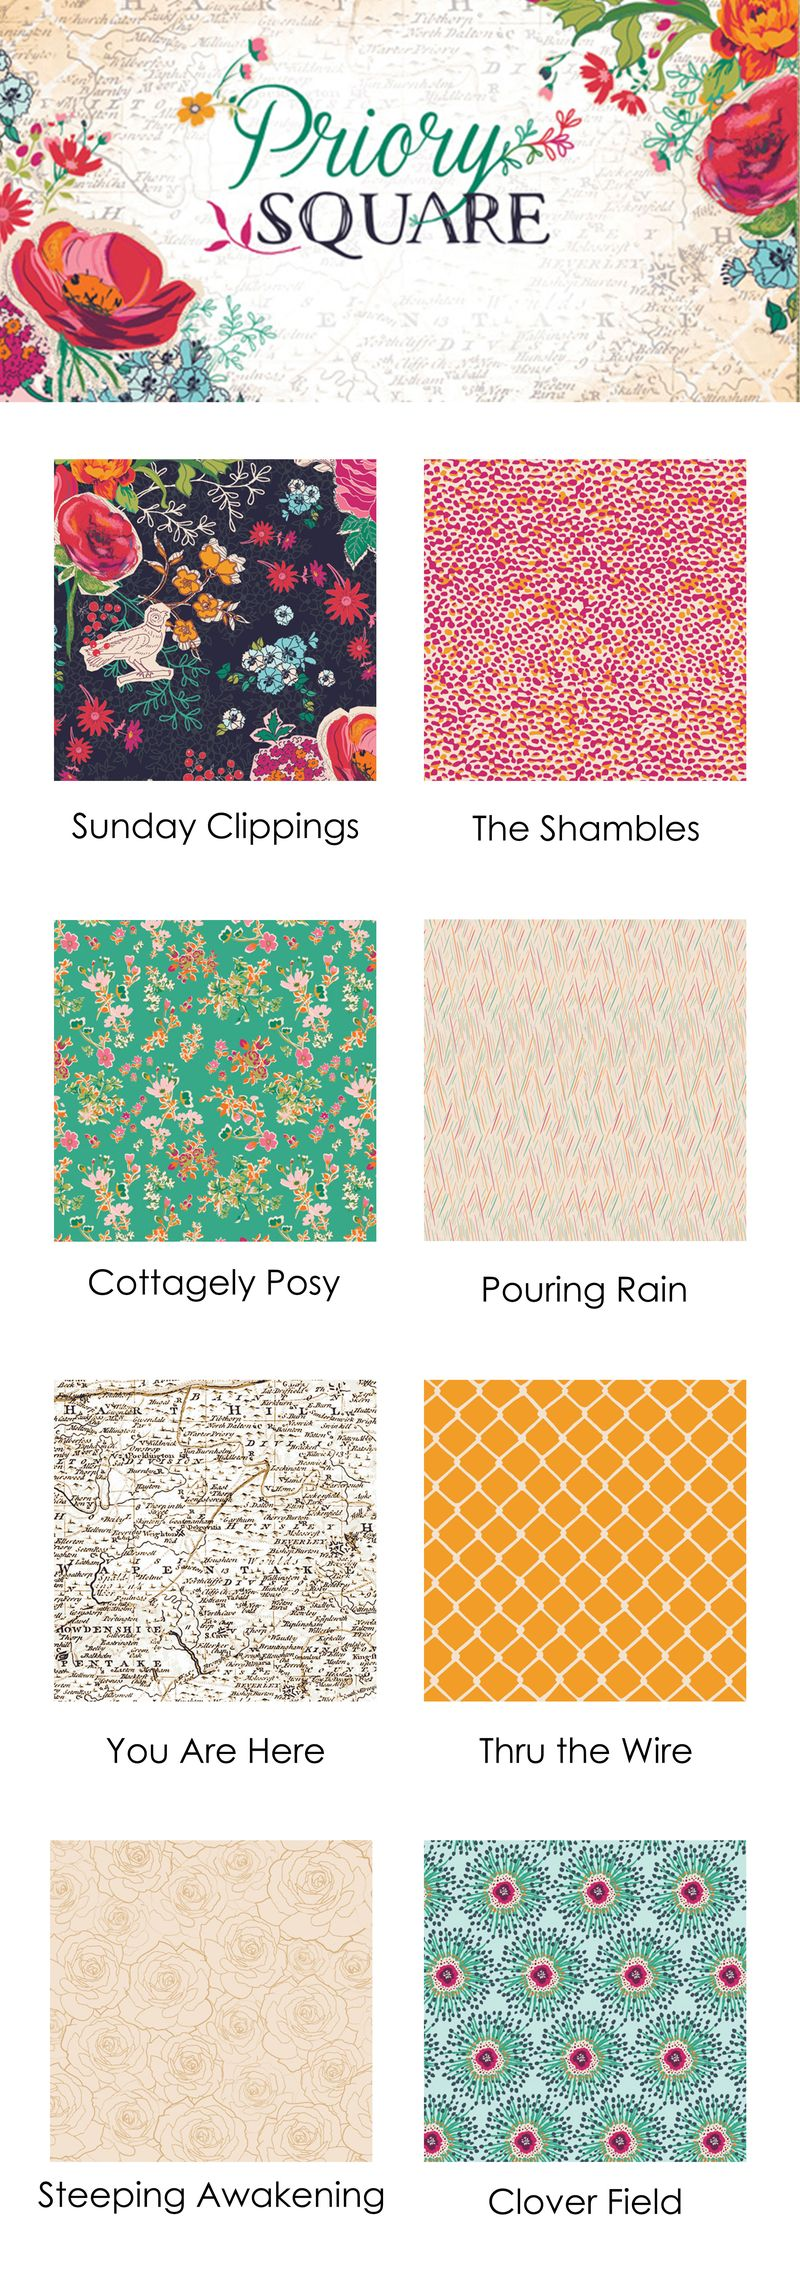 Priory-Square-Swatches_2_Web